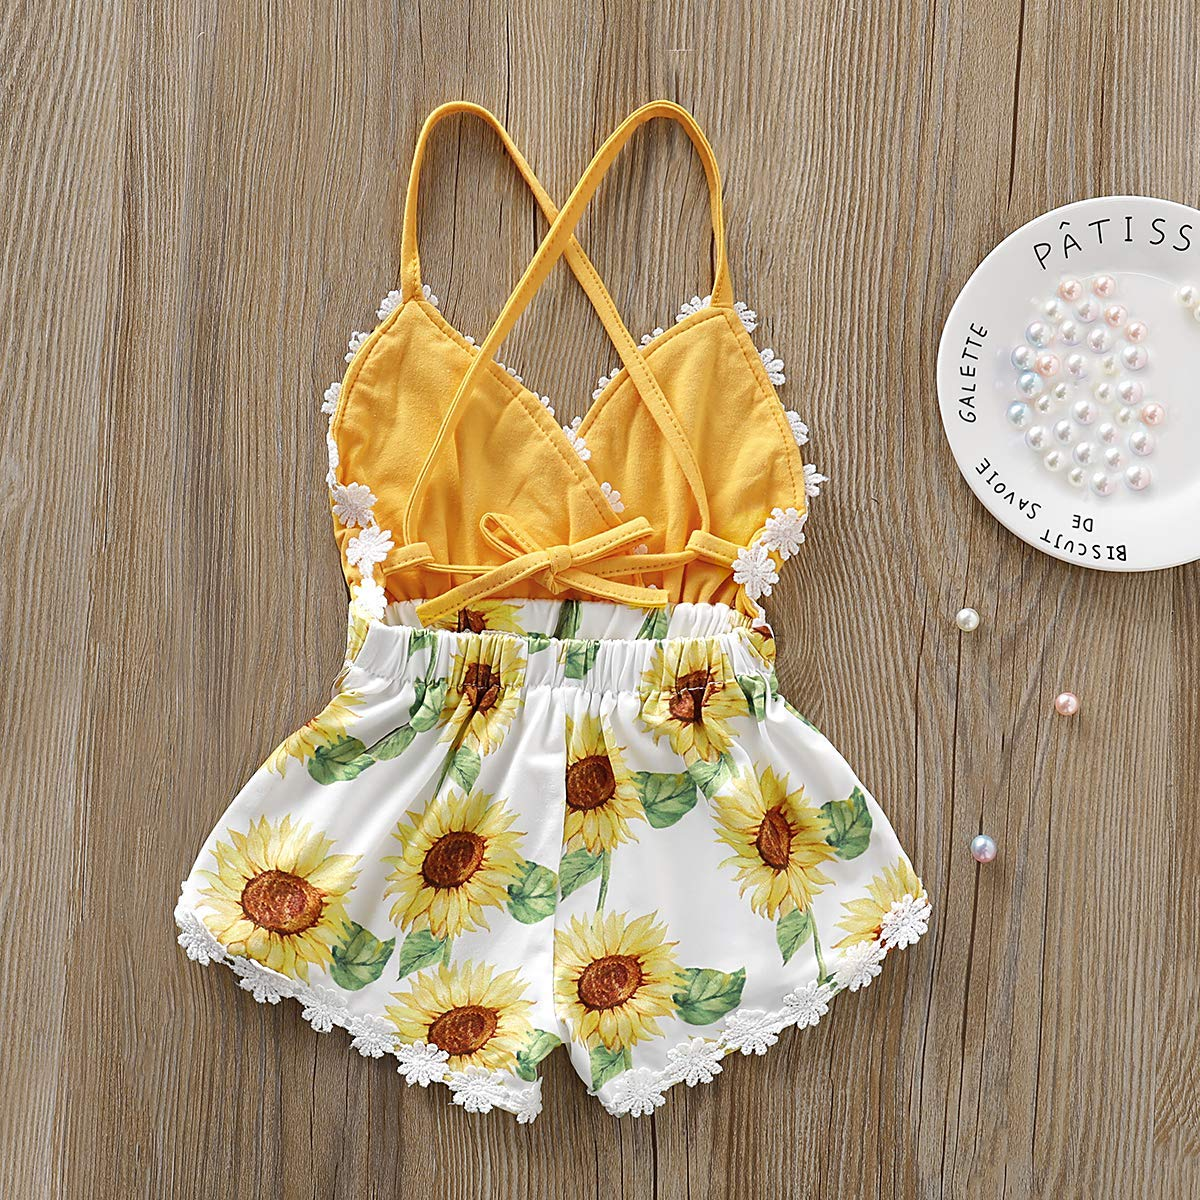 Summer Toddler Baby Girl Clothes Cute Watermelon Print Lace Trim Backless Romper Beach Jumpsuit